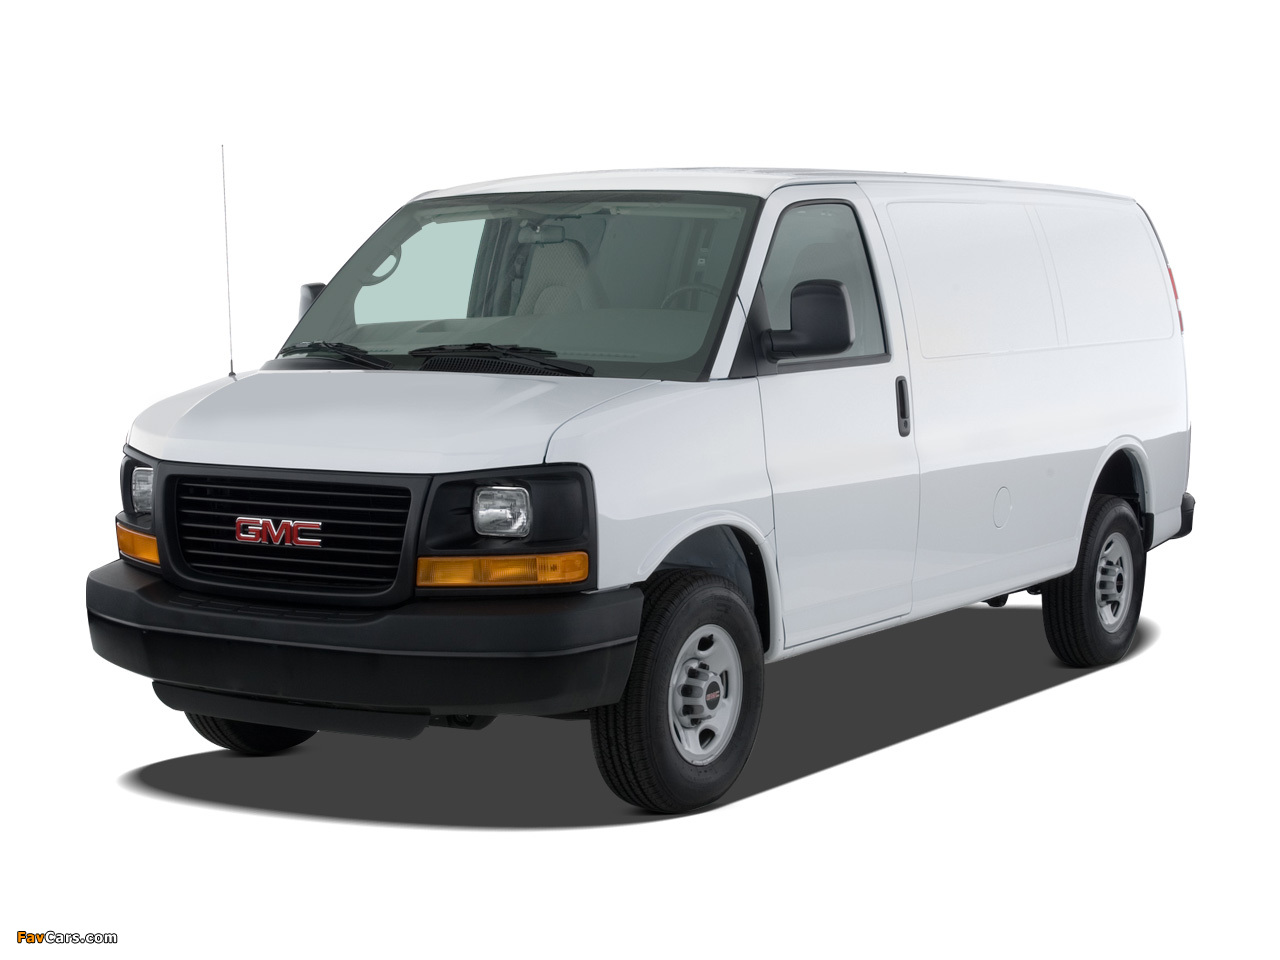 GMC Savana Van 2002 wallpapers (1280 x 960)